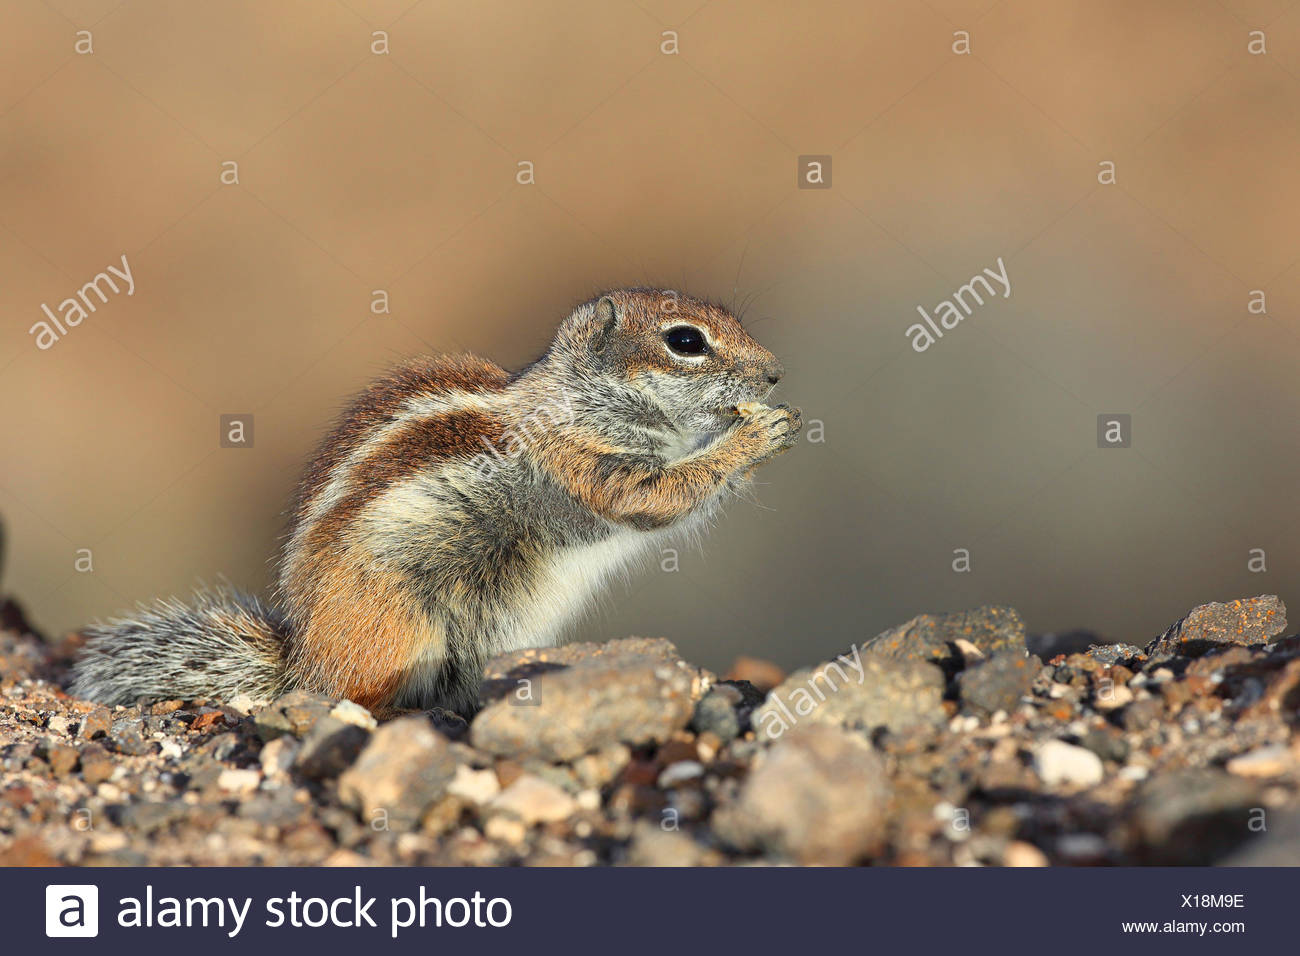 barbary ground squirrel, North African ground squirrel (Atlantoxerus getulus), sits on the ground and is eating, Canary Islands, Fuerteventura - Stock Image